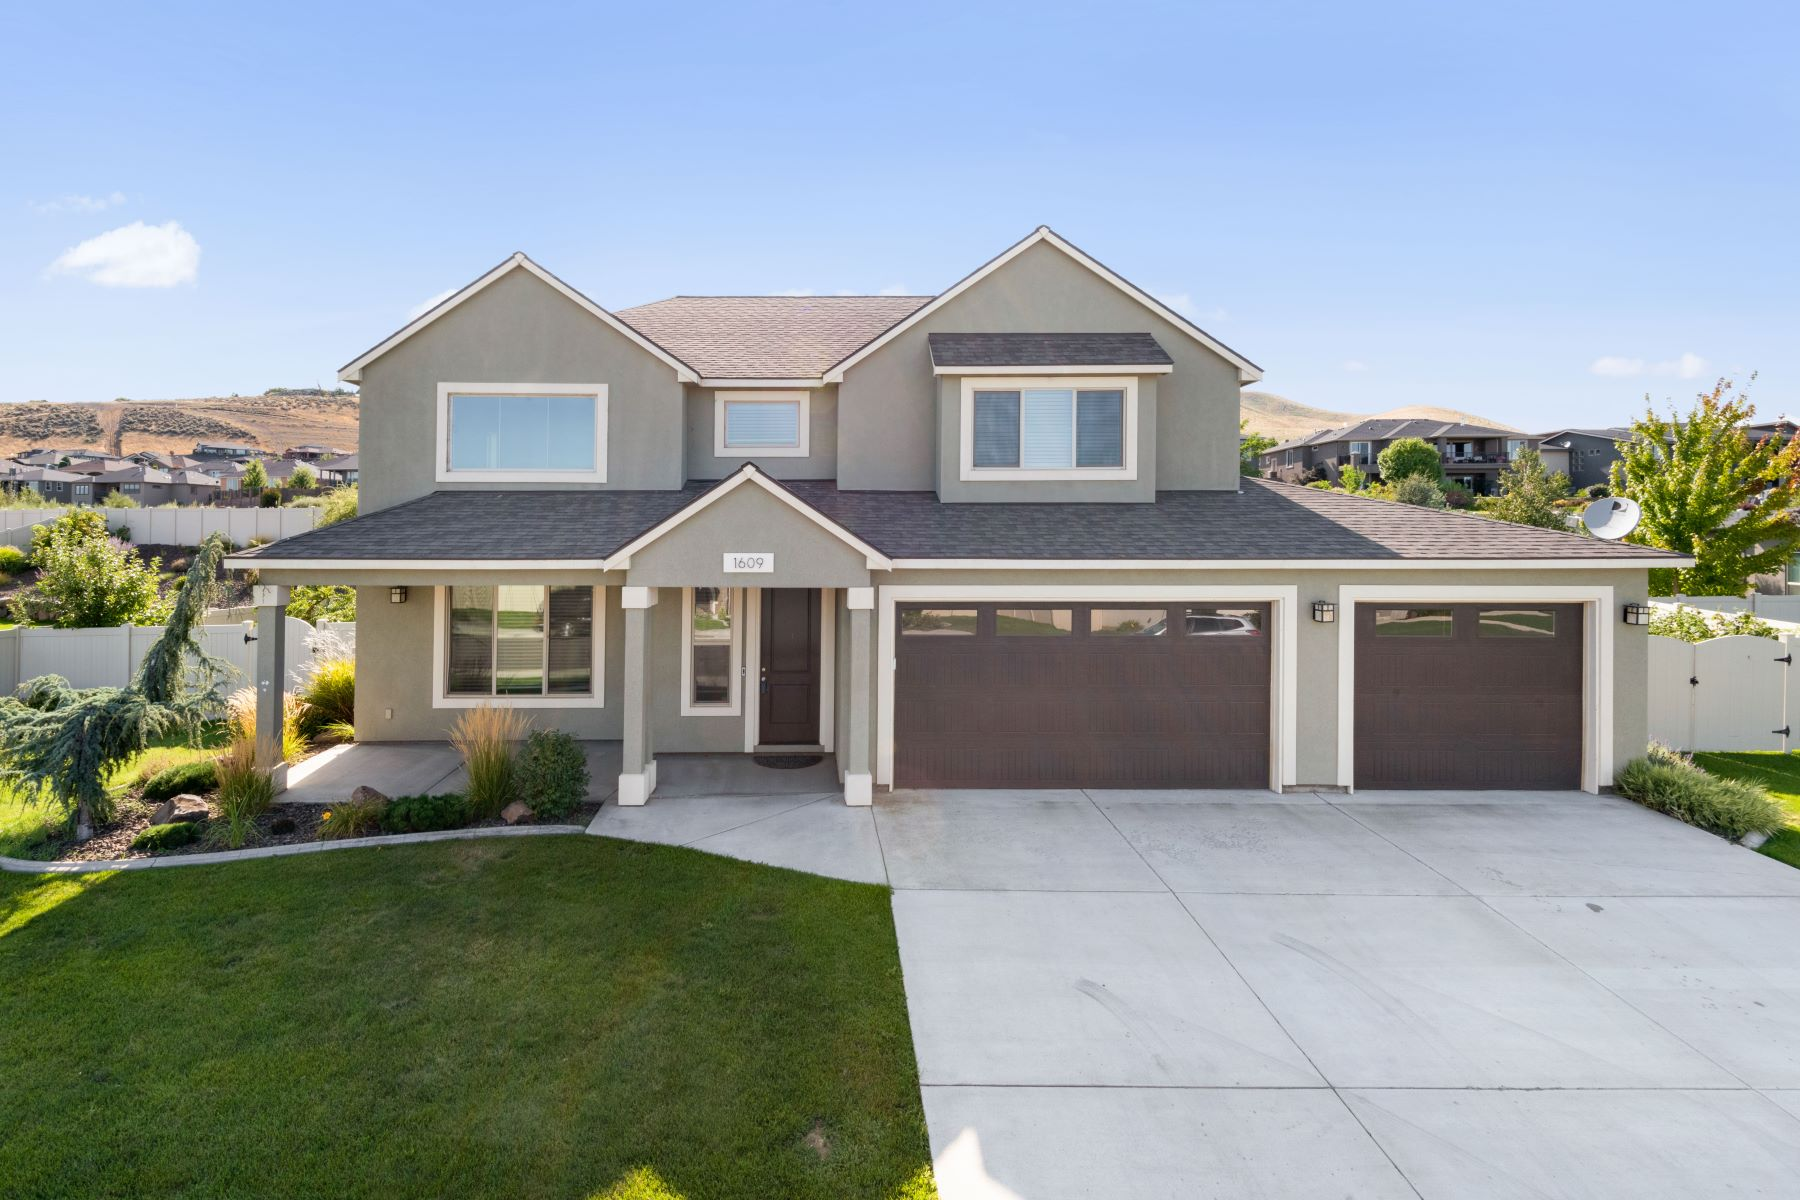 Single Family Homes for Sale at Lexington Heights Bright, Light, & Modern 1609 Molly Marie Avenue Richland, Washington 99352 United States